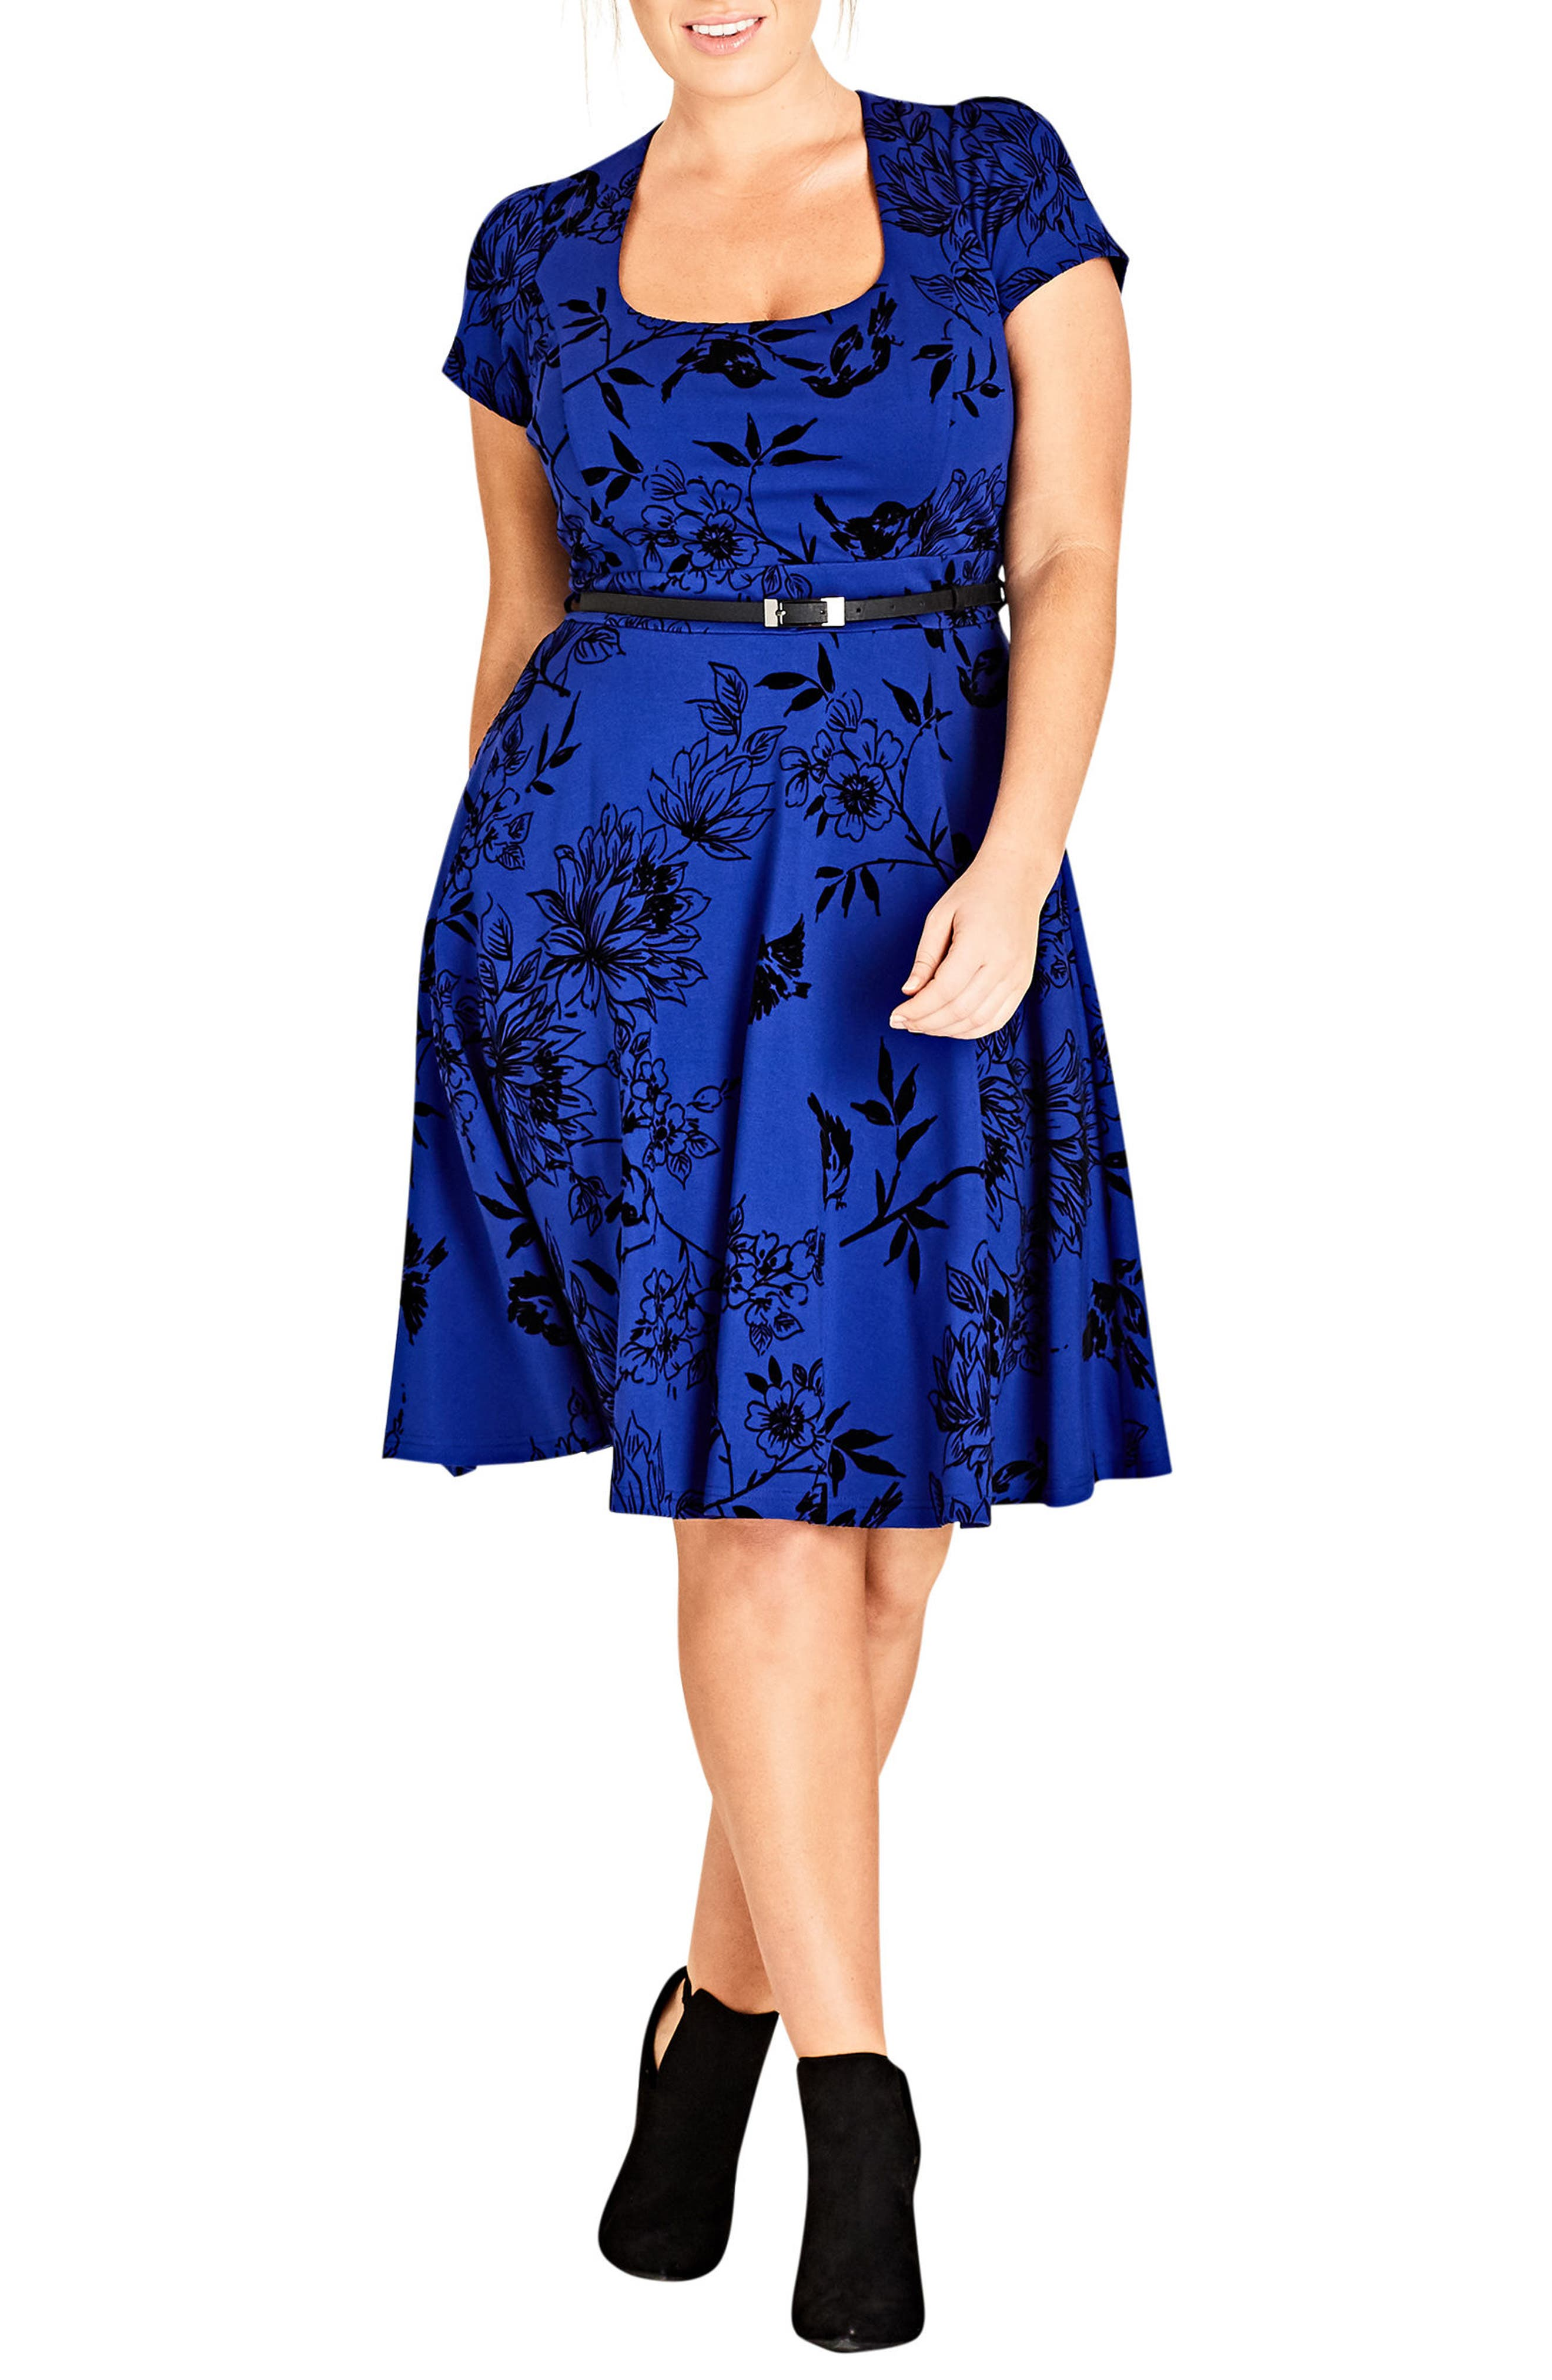 Birdy Flock Fit & Flare Dress,                         Main,                         color, Pool